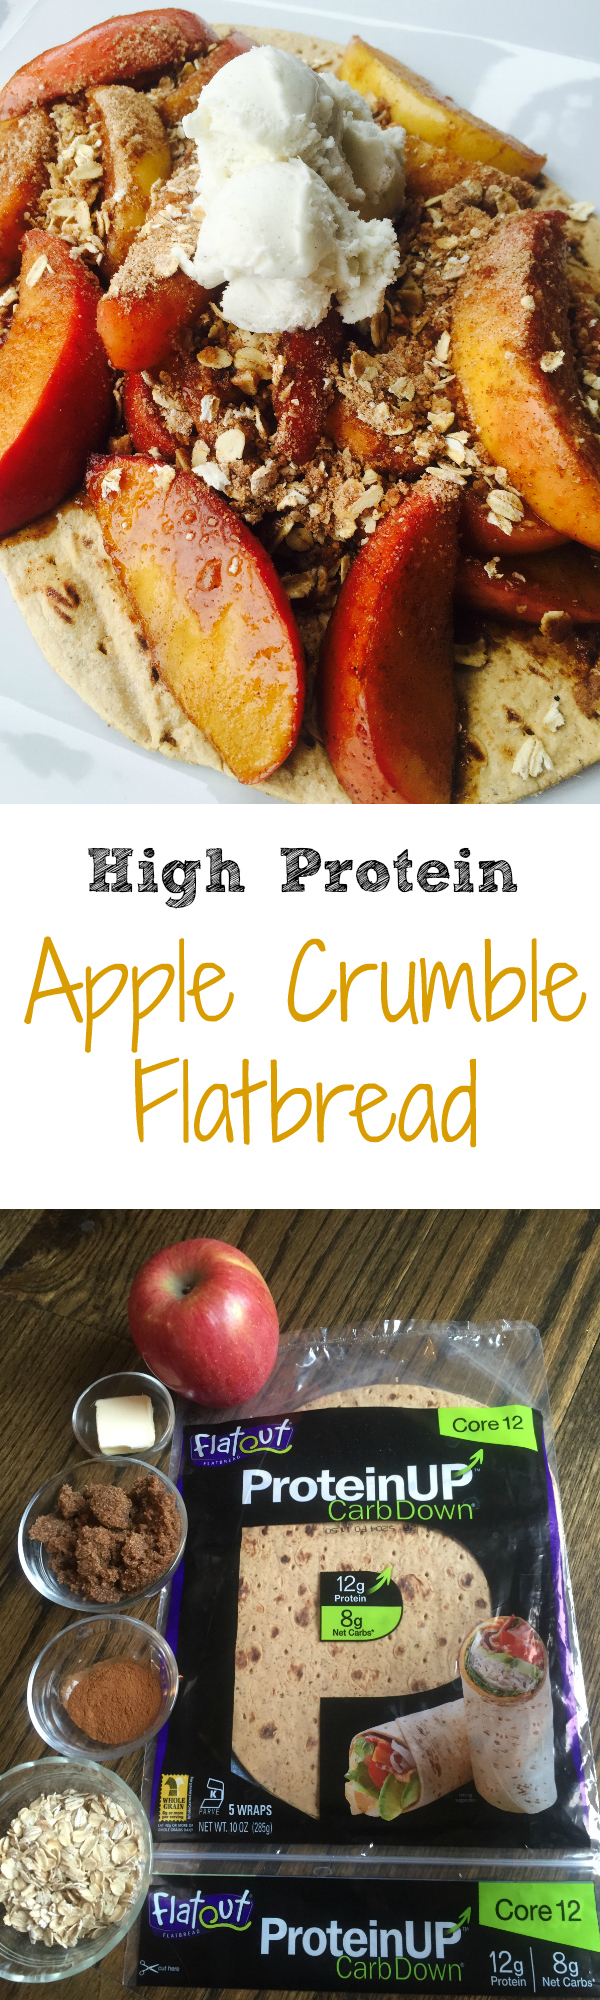 Apple Crumble Flatbread